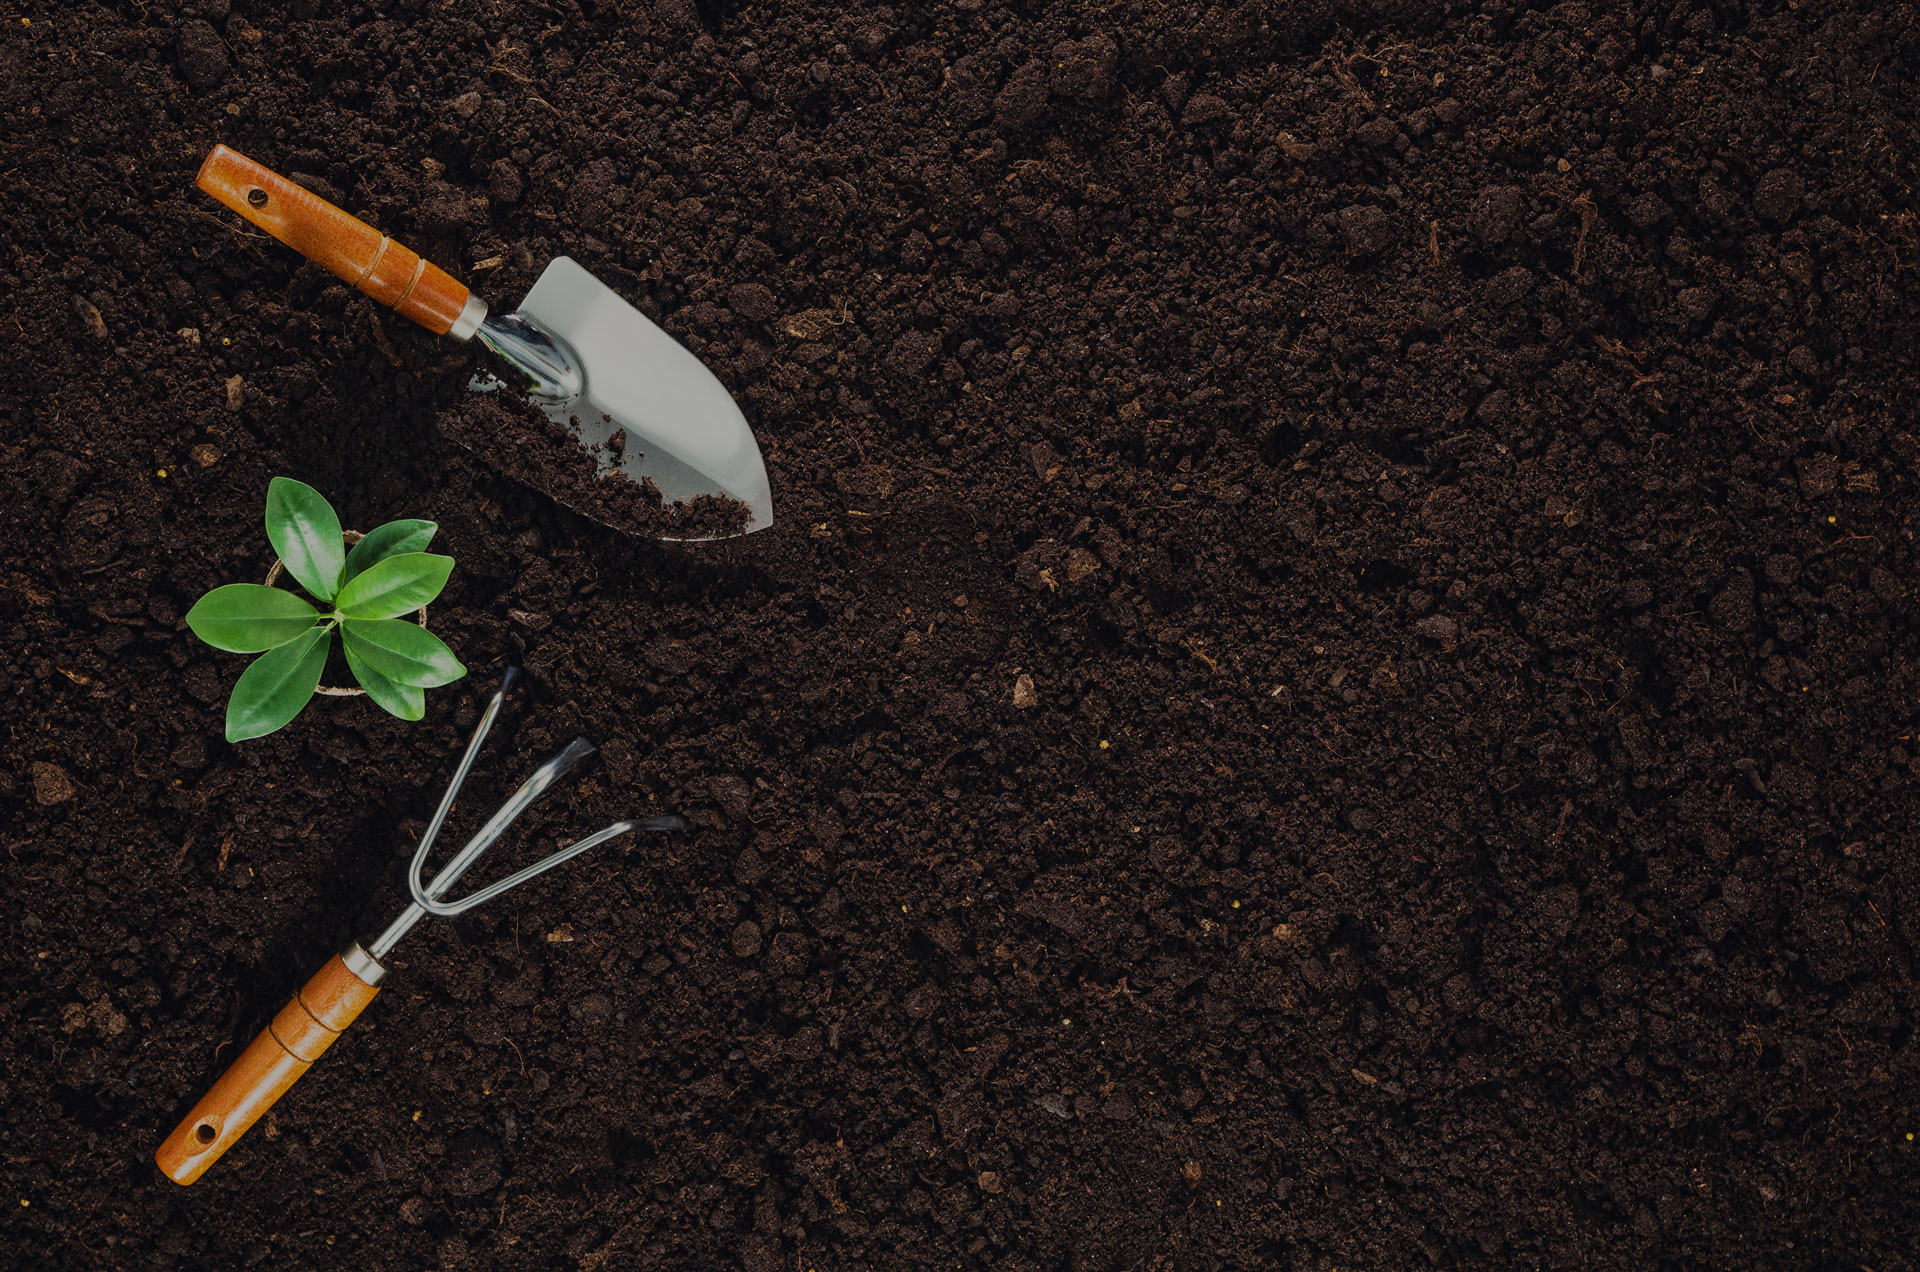 Gardening tools on fertile soil texture background seen from above, top view.